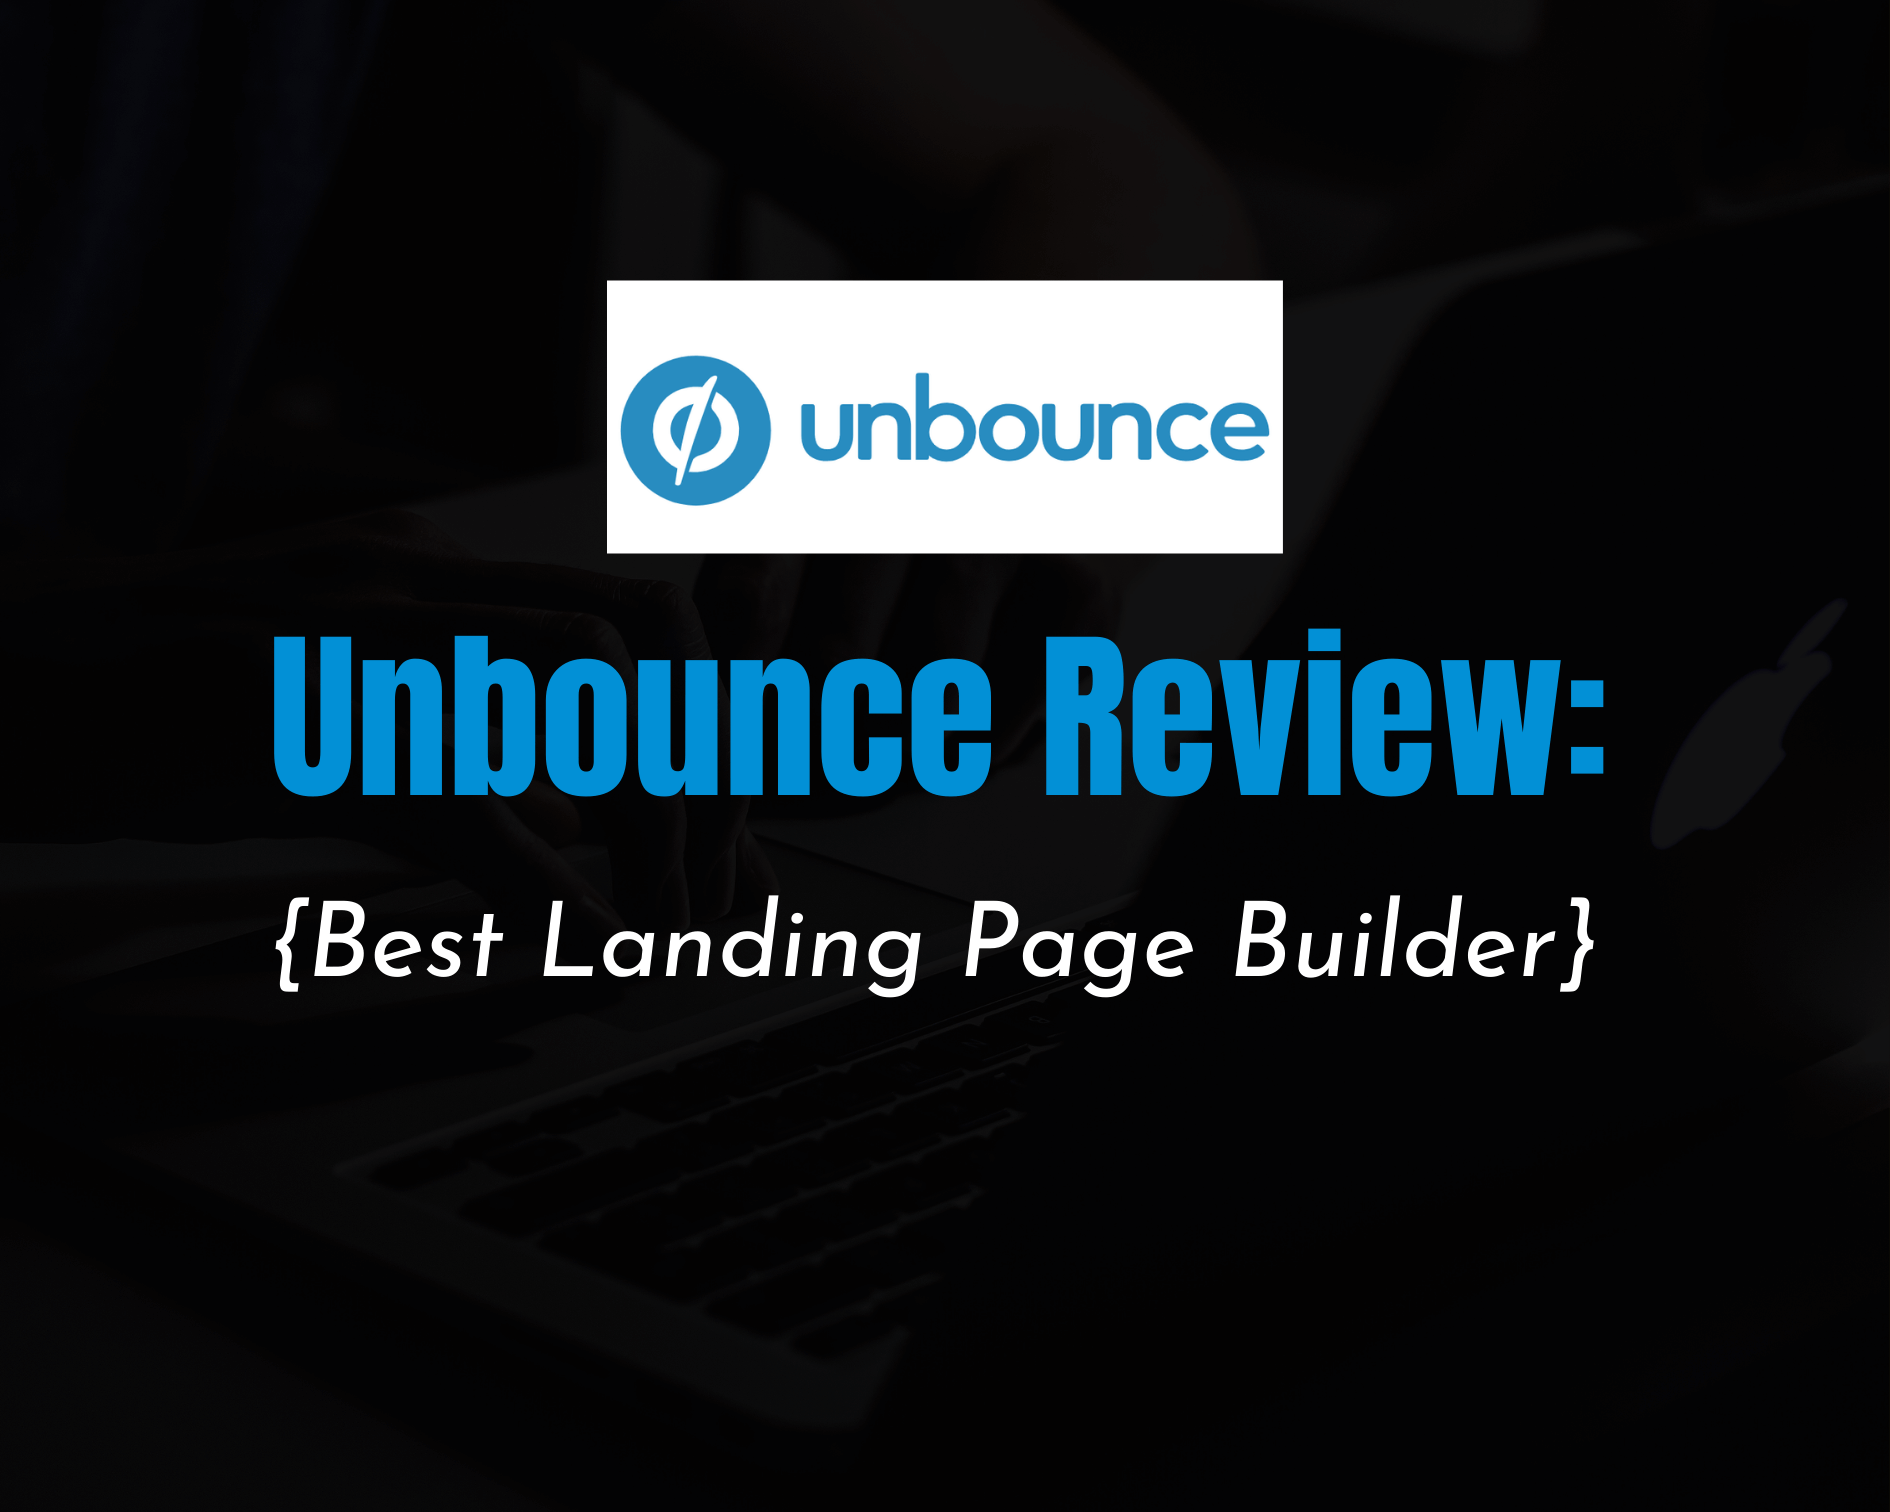 Unbounce Review: Best landing Page Builder for 2020 and Beyond